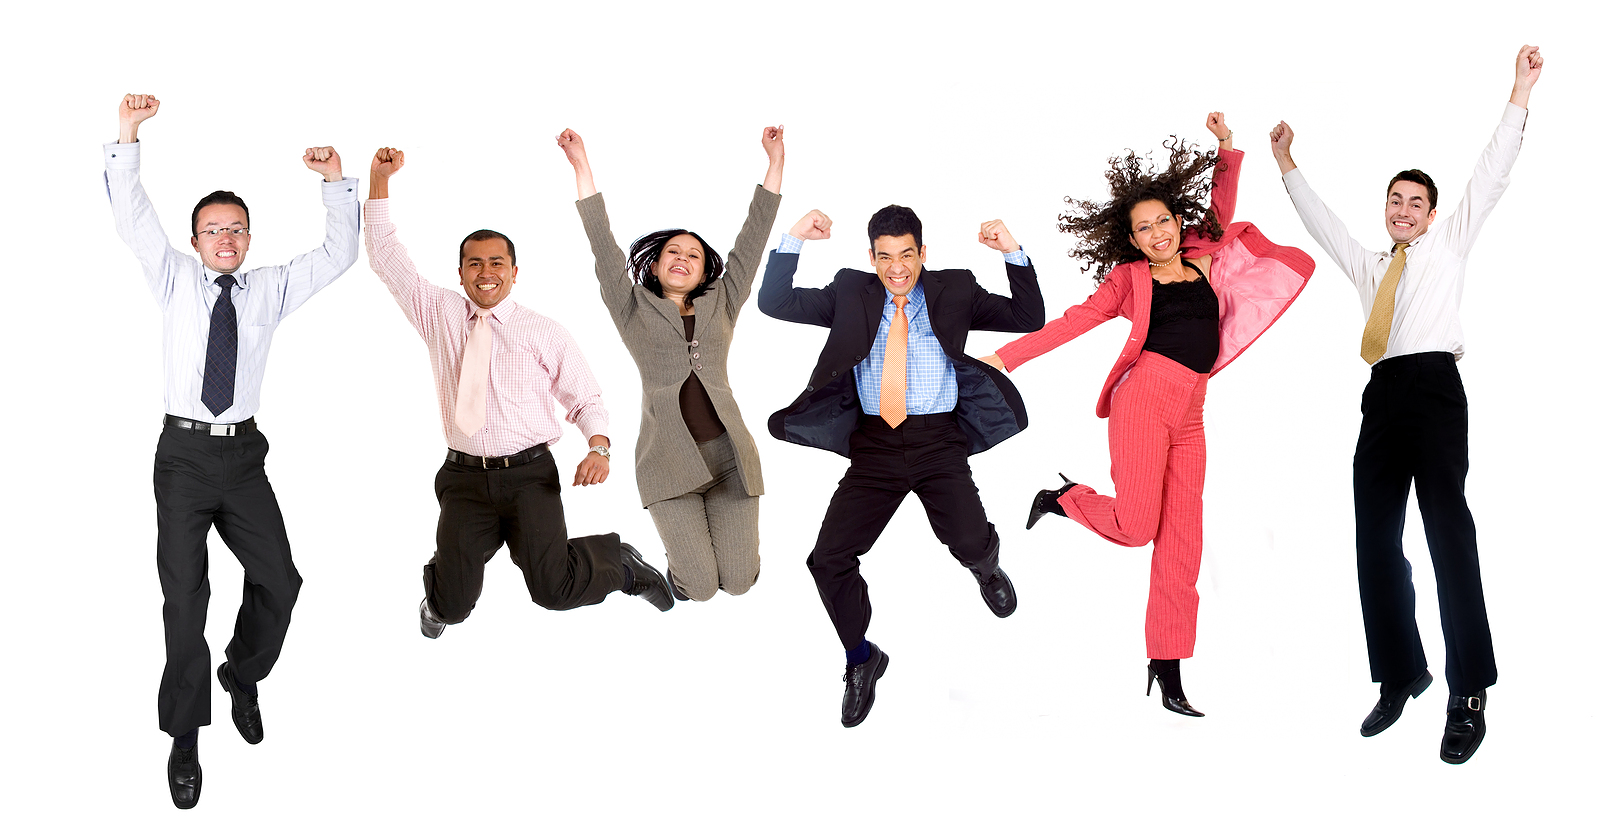 vector download Free pictures happy people. Jumping clipart feel good.